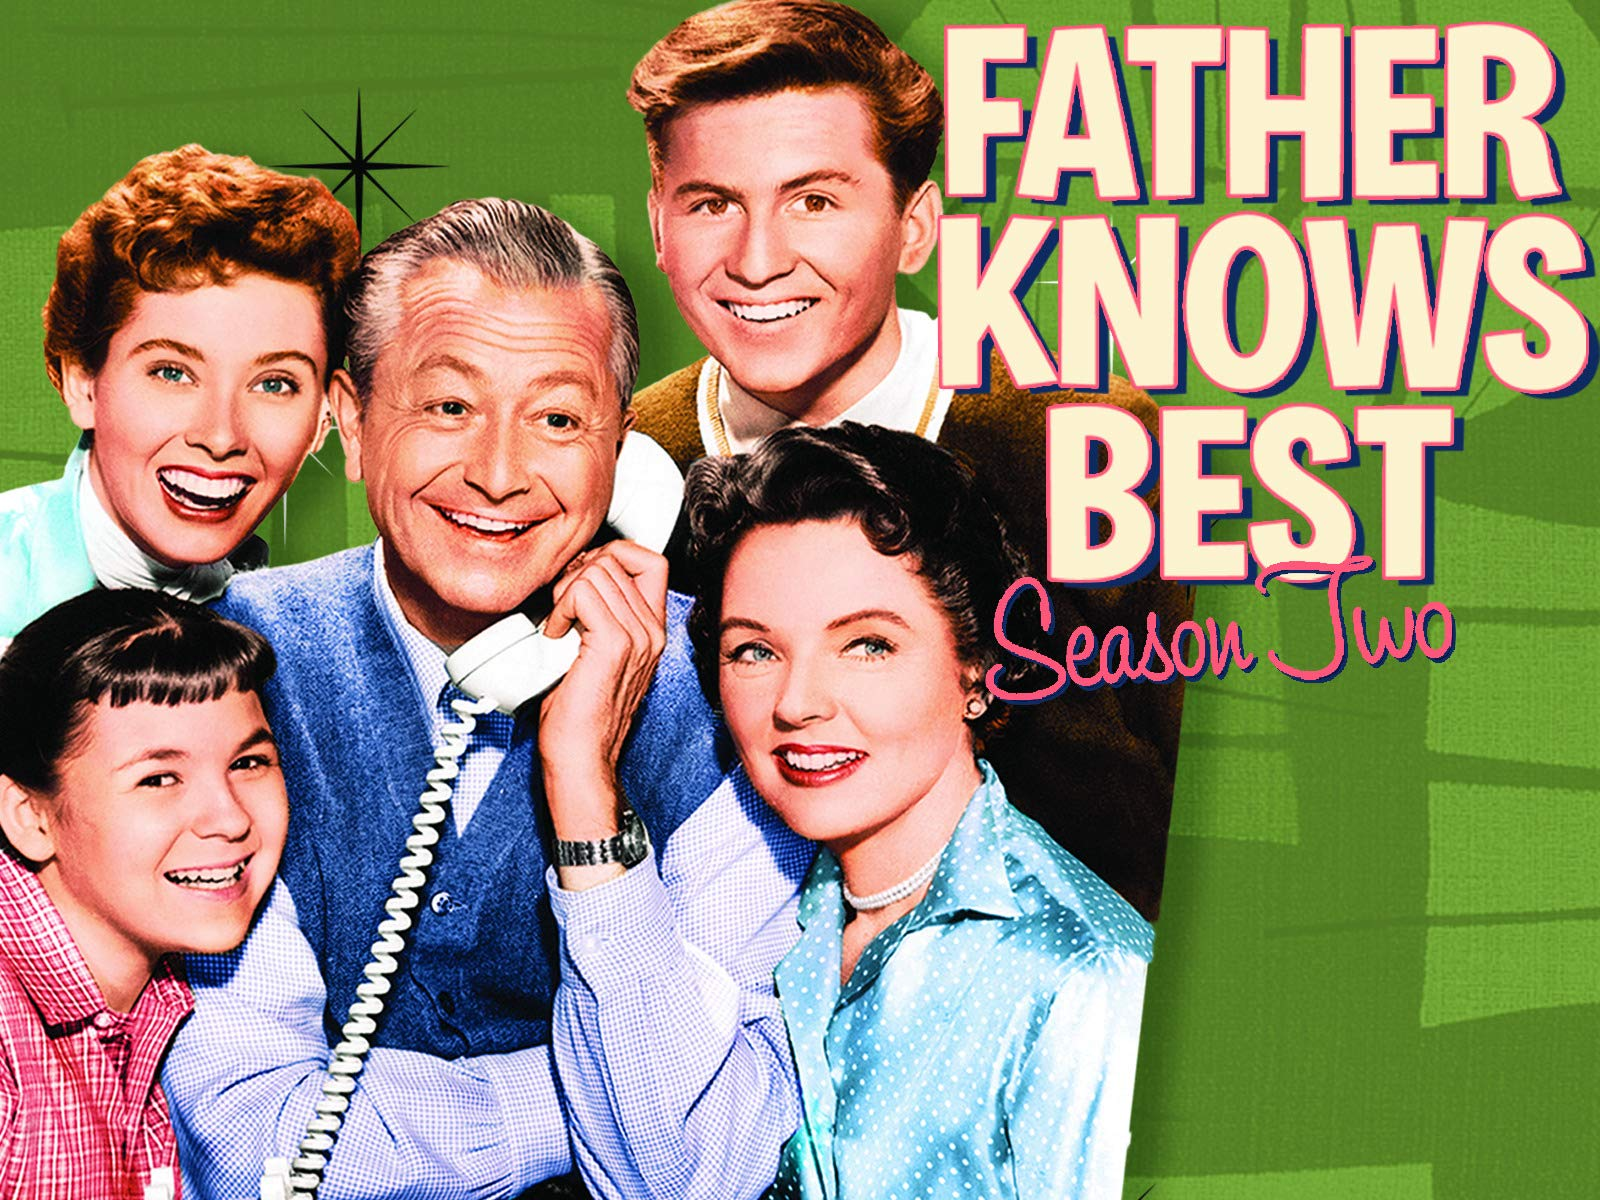 Father Knows Best - Season 2